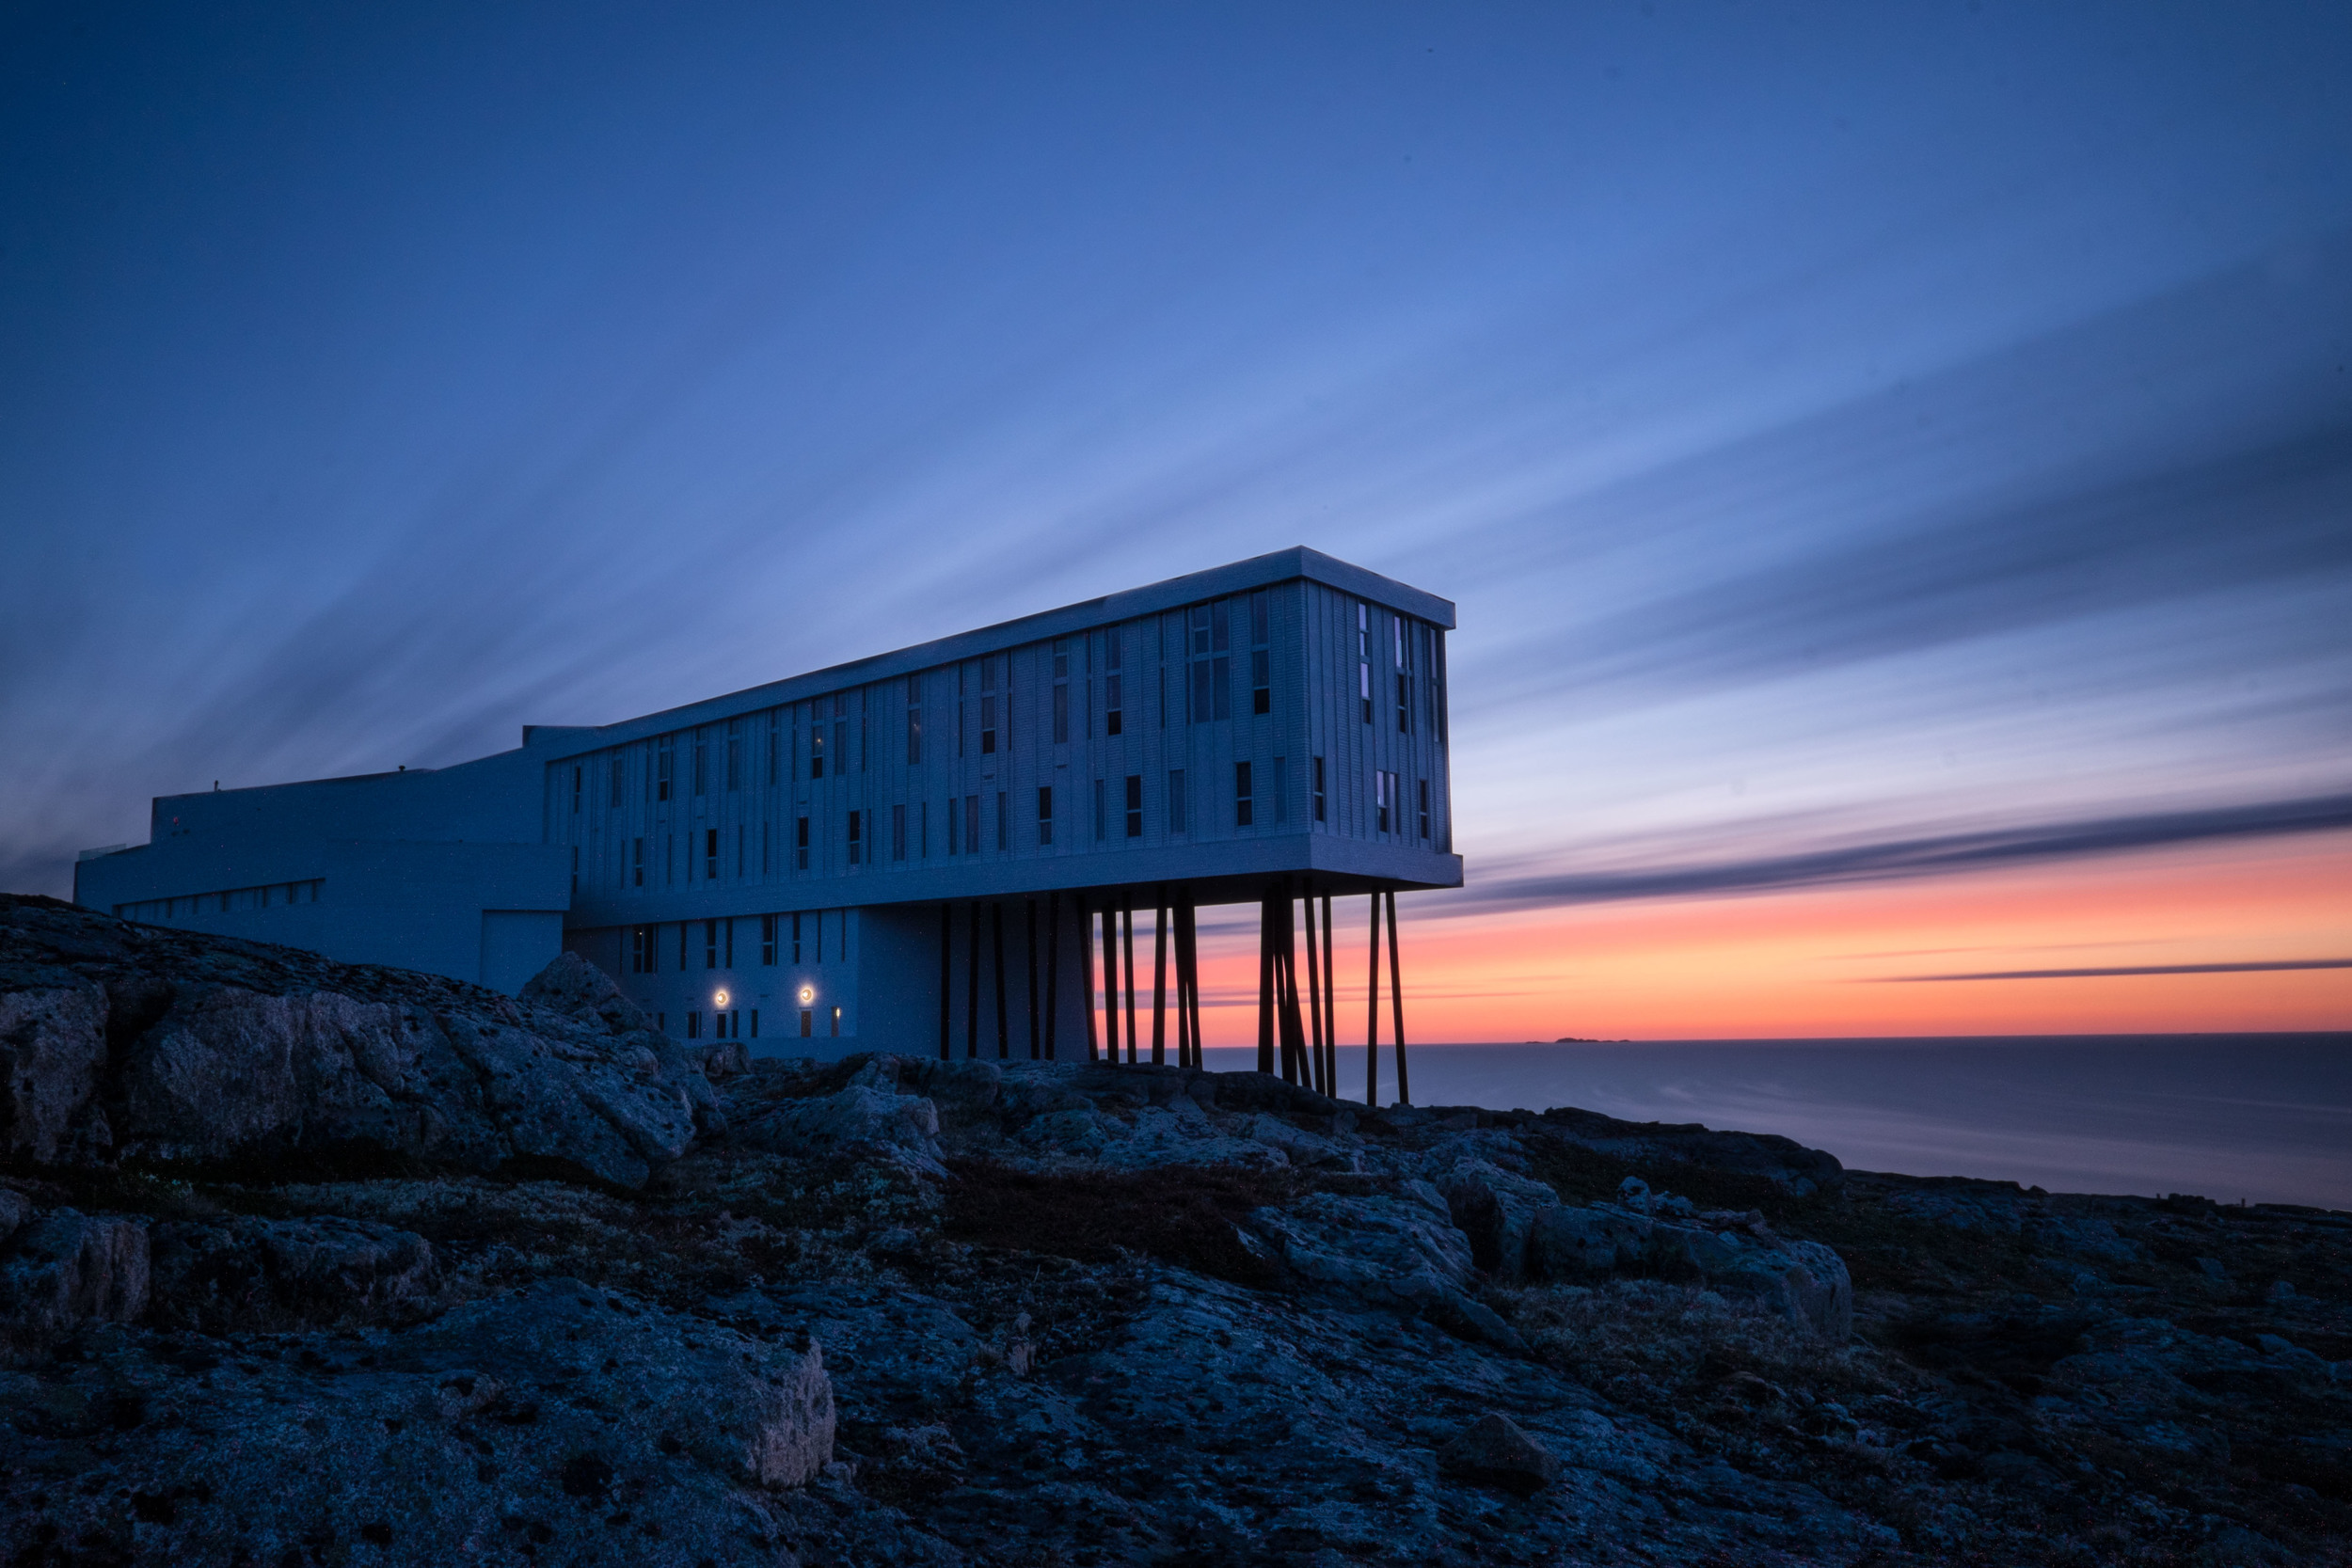 10 minute exposure of Fogo Island Inn using Lee Filters Big Stopper.  The direction of the wind and light streaks made for a fun image.  Only thing better would have been if more lights were on in the Inn... but c'est la vie.